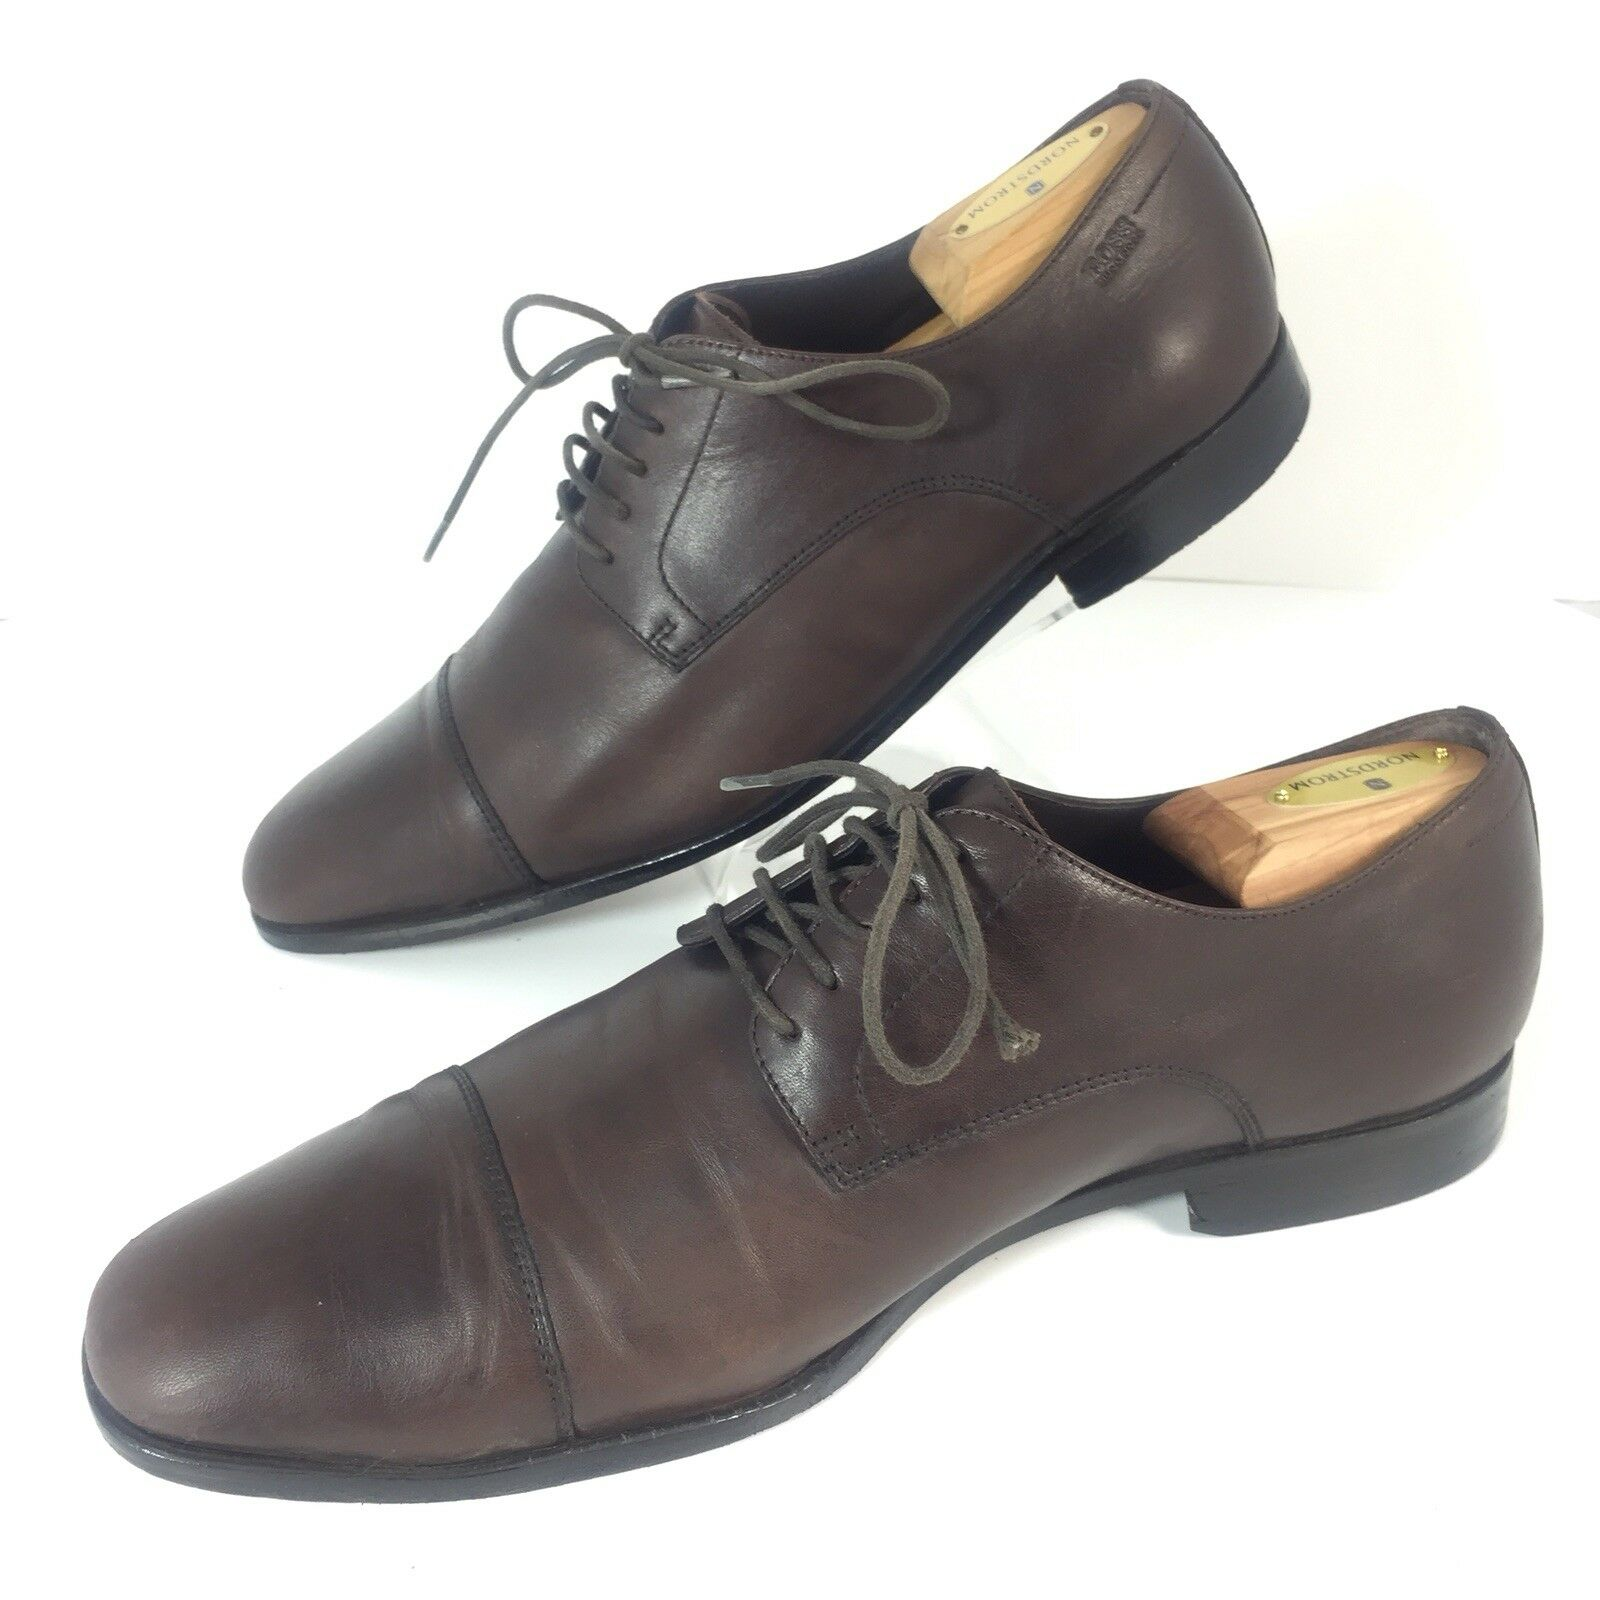 Hugo Boss Cap Toe Oxford Shoes Uomo 9 EU 42 Lace Up Brown Dress Shoes Pelle